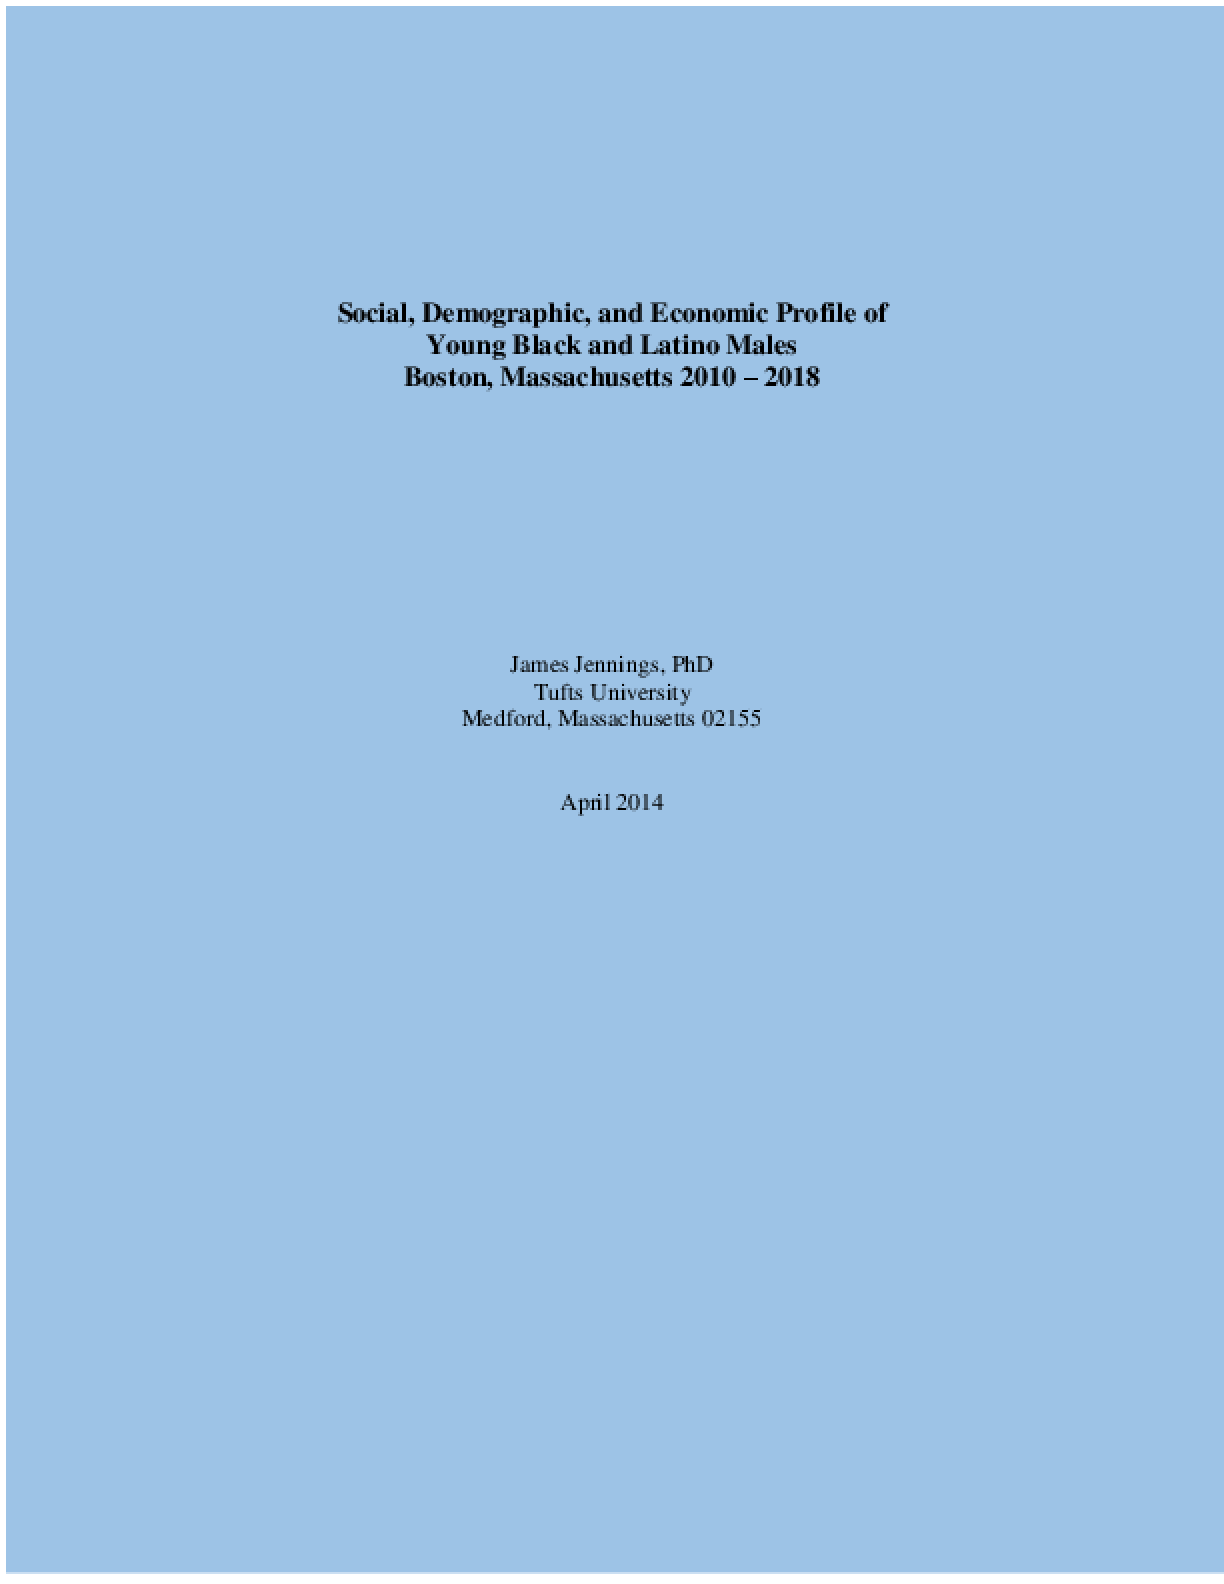 Social, Demographic, and Economic Profile of Young Black and Latino Males, Boston, Massachusetts 2010-2018